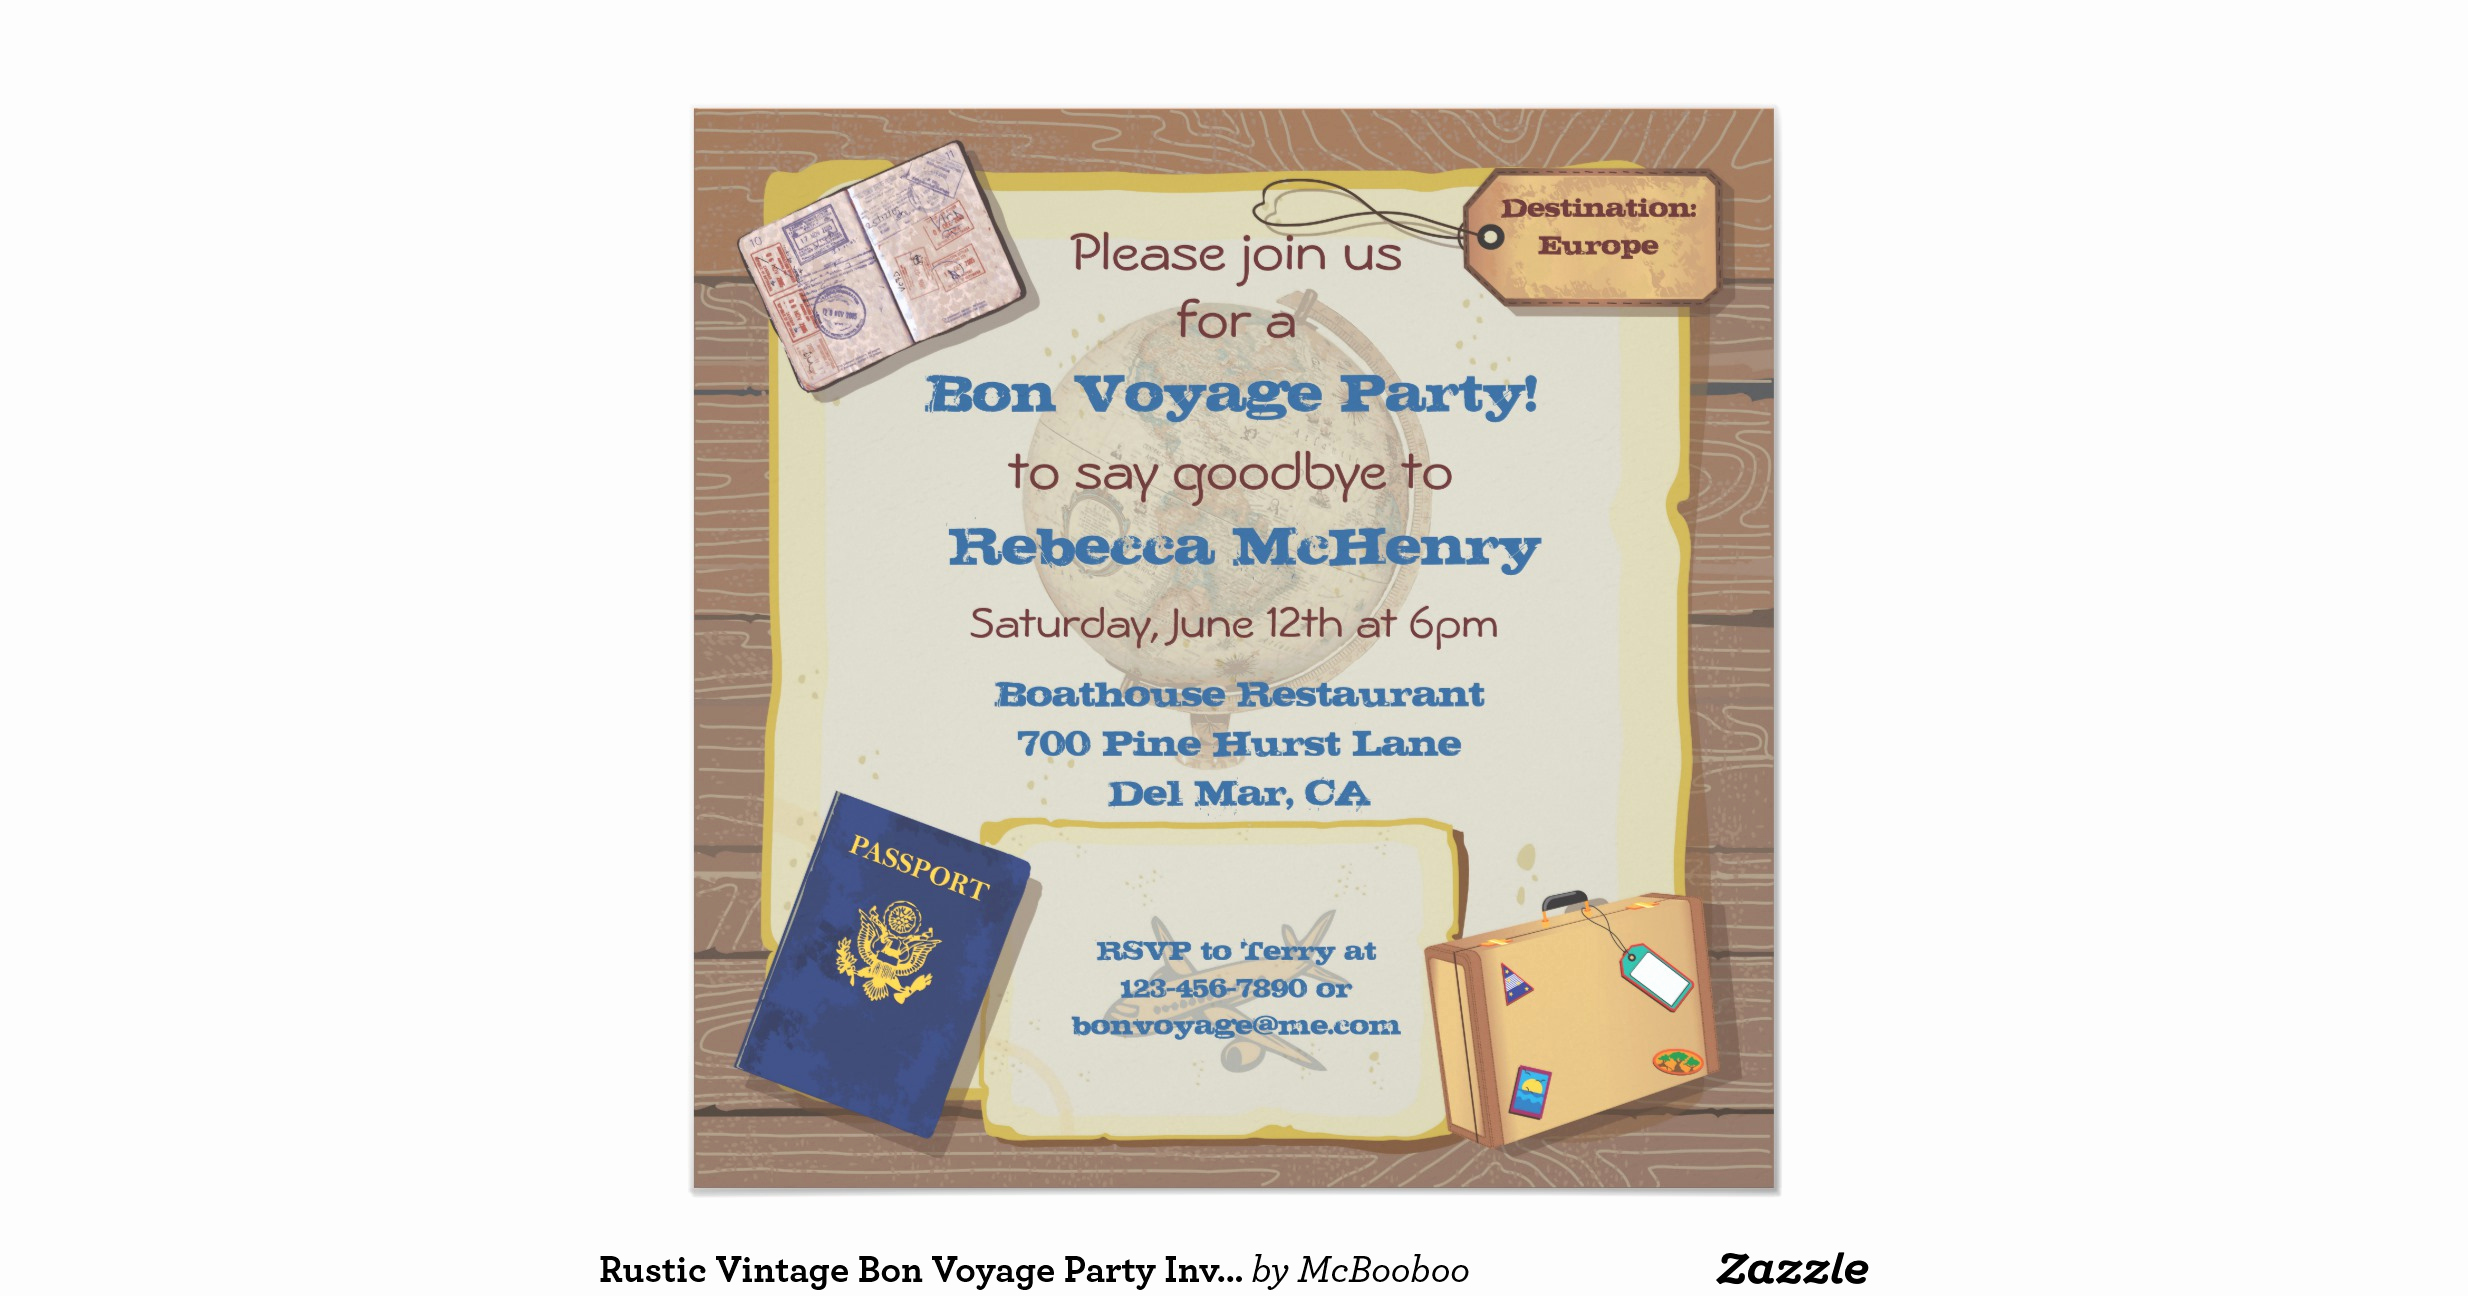 Bon Voyage Party Invitation Elegant Rustic Vintage Bon Voyage Party Invitation